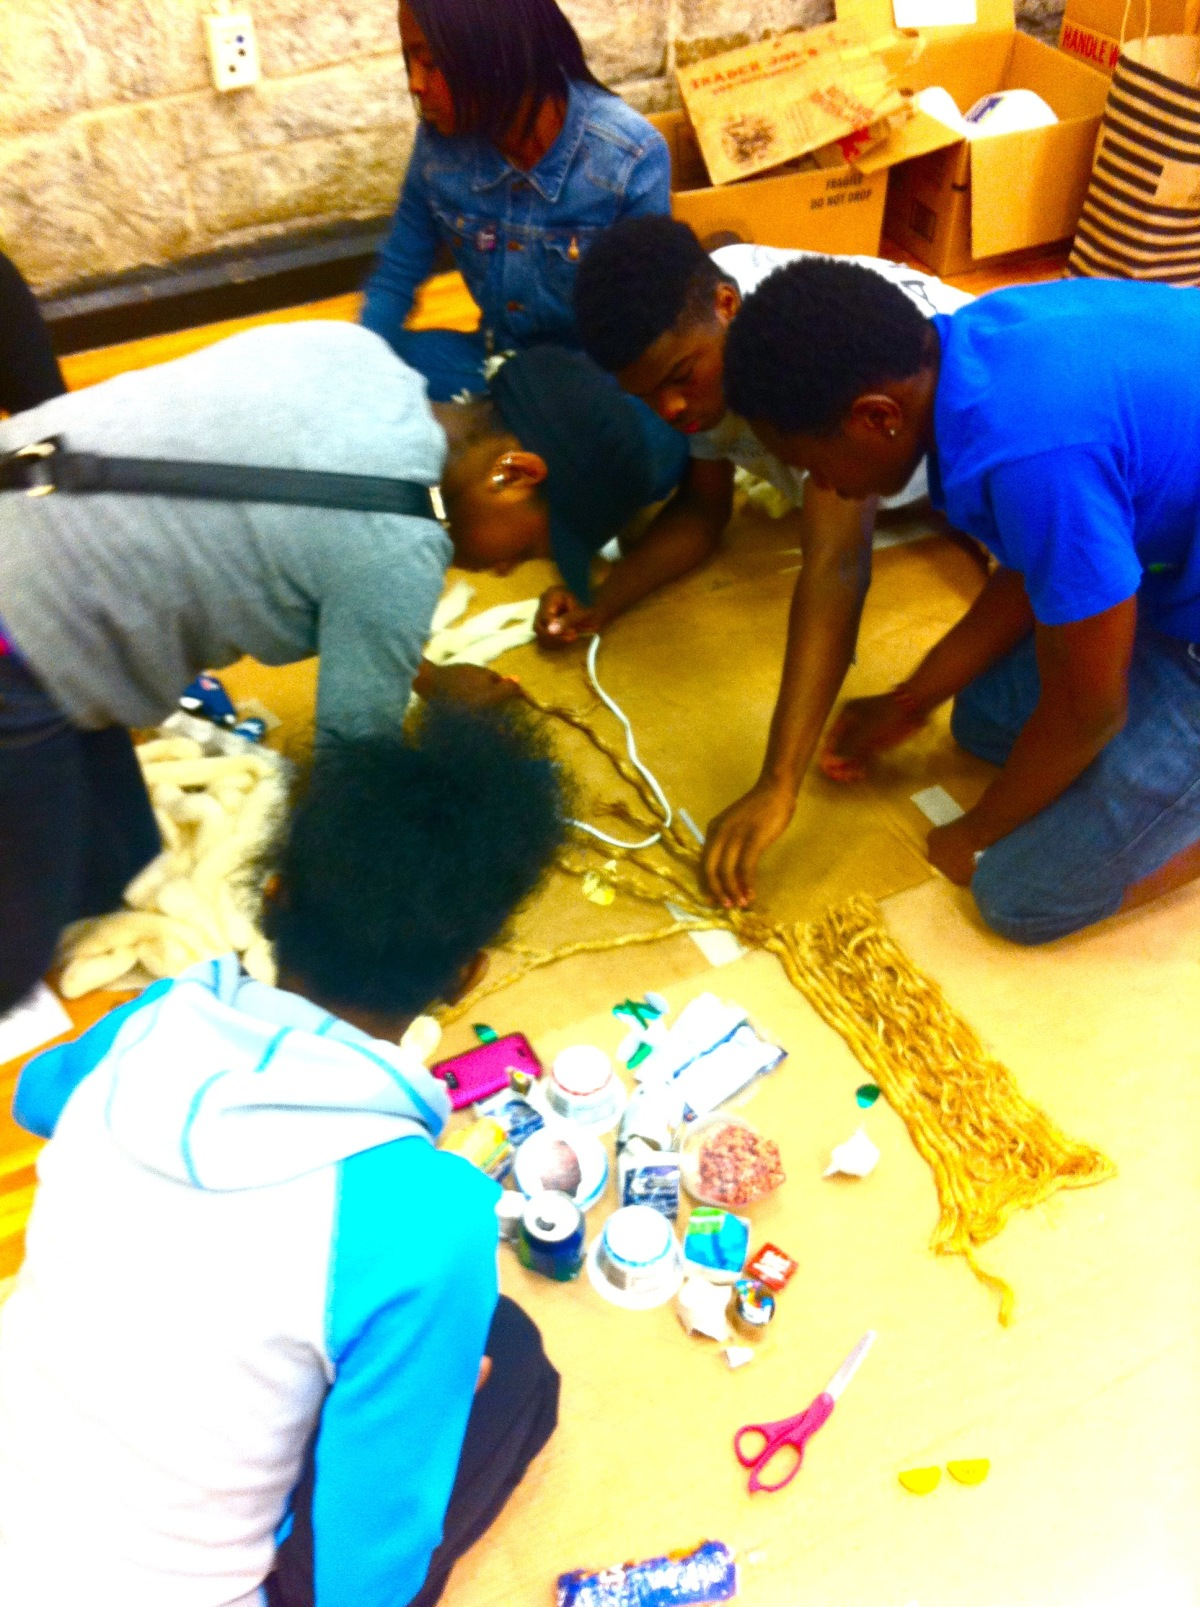 do_good_students_create_art_from_recycled_goods_2521.jpg